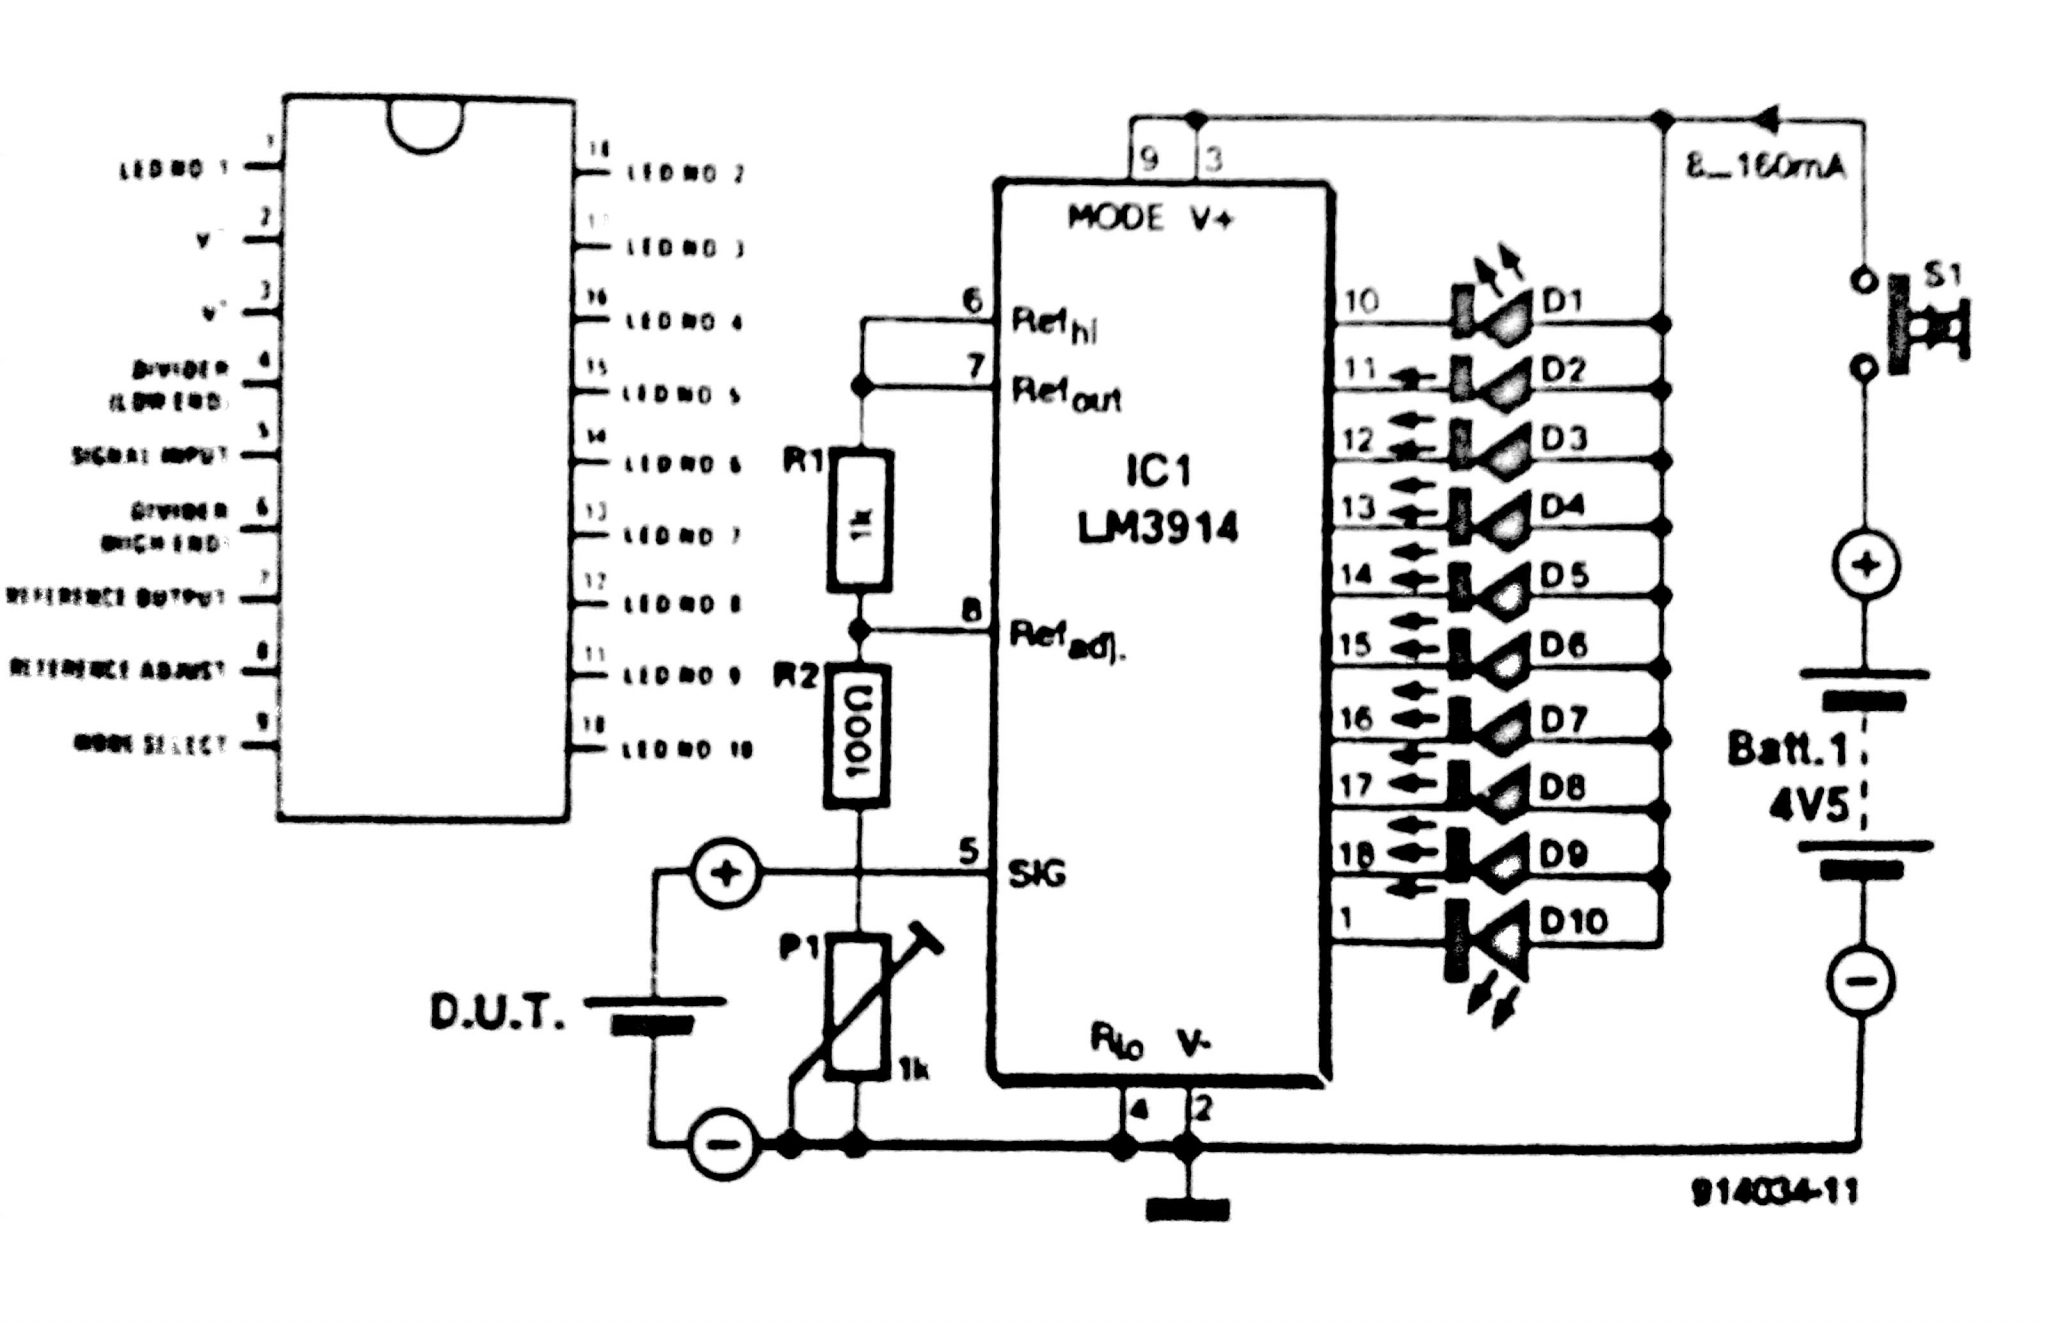 Battery Schematic Diagram